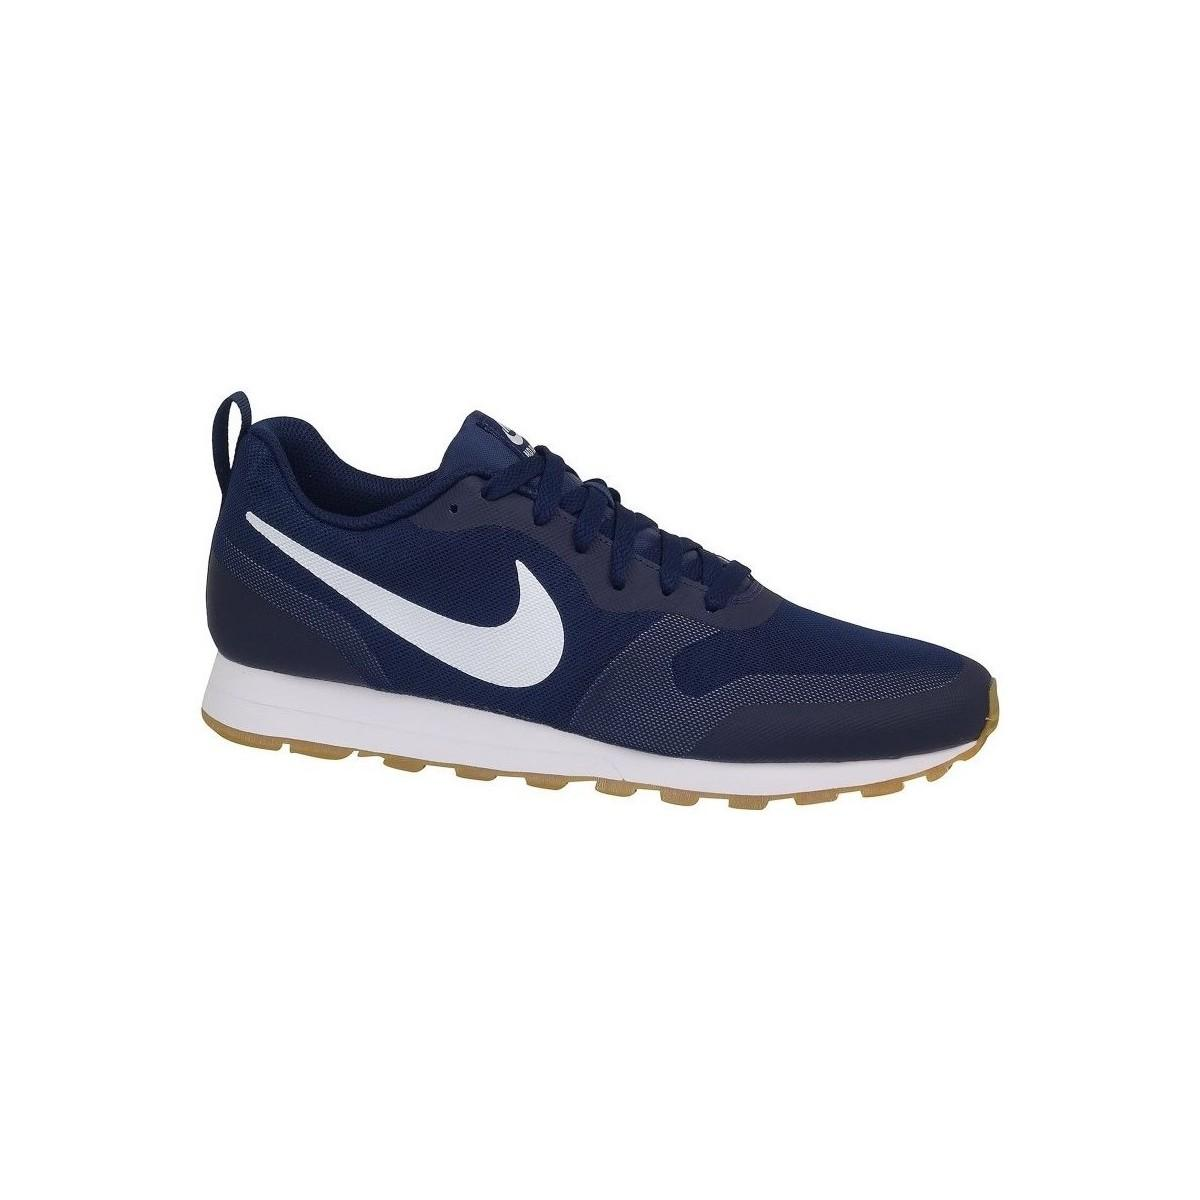 eec3a40de06 Nike Md Runner 2 19 Men s Shoes (trainers) In Multicolour in Blue ...